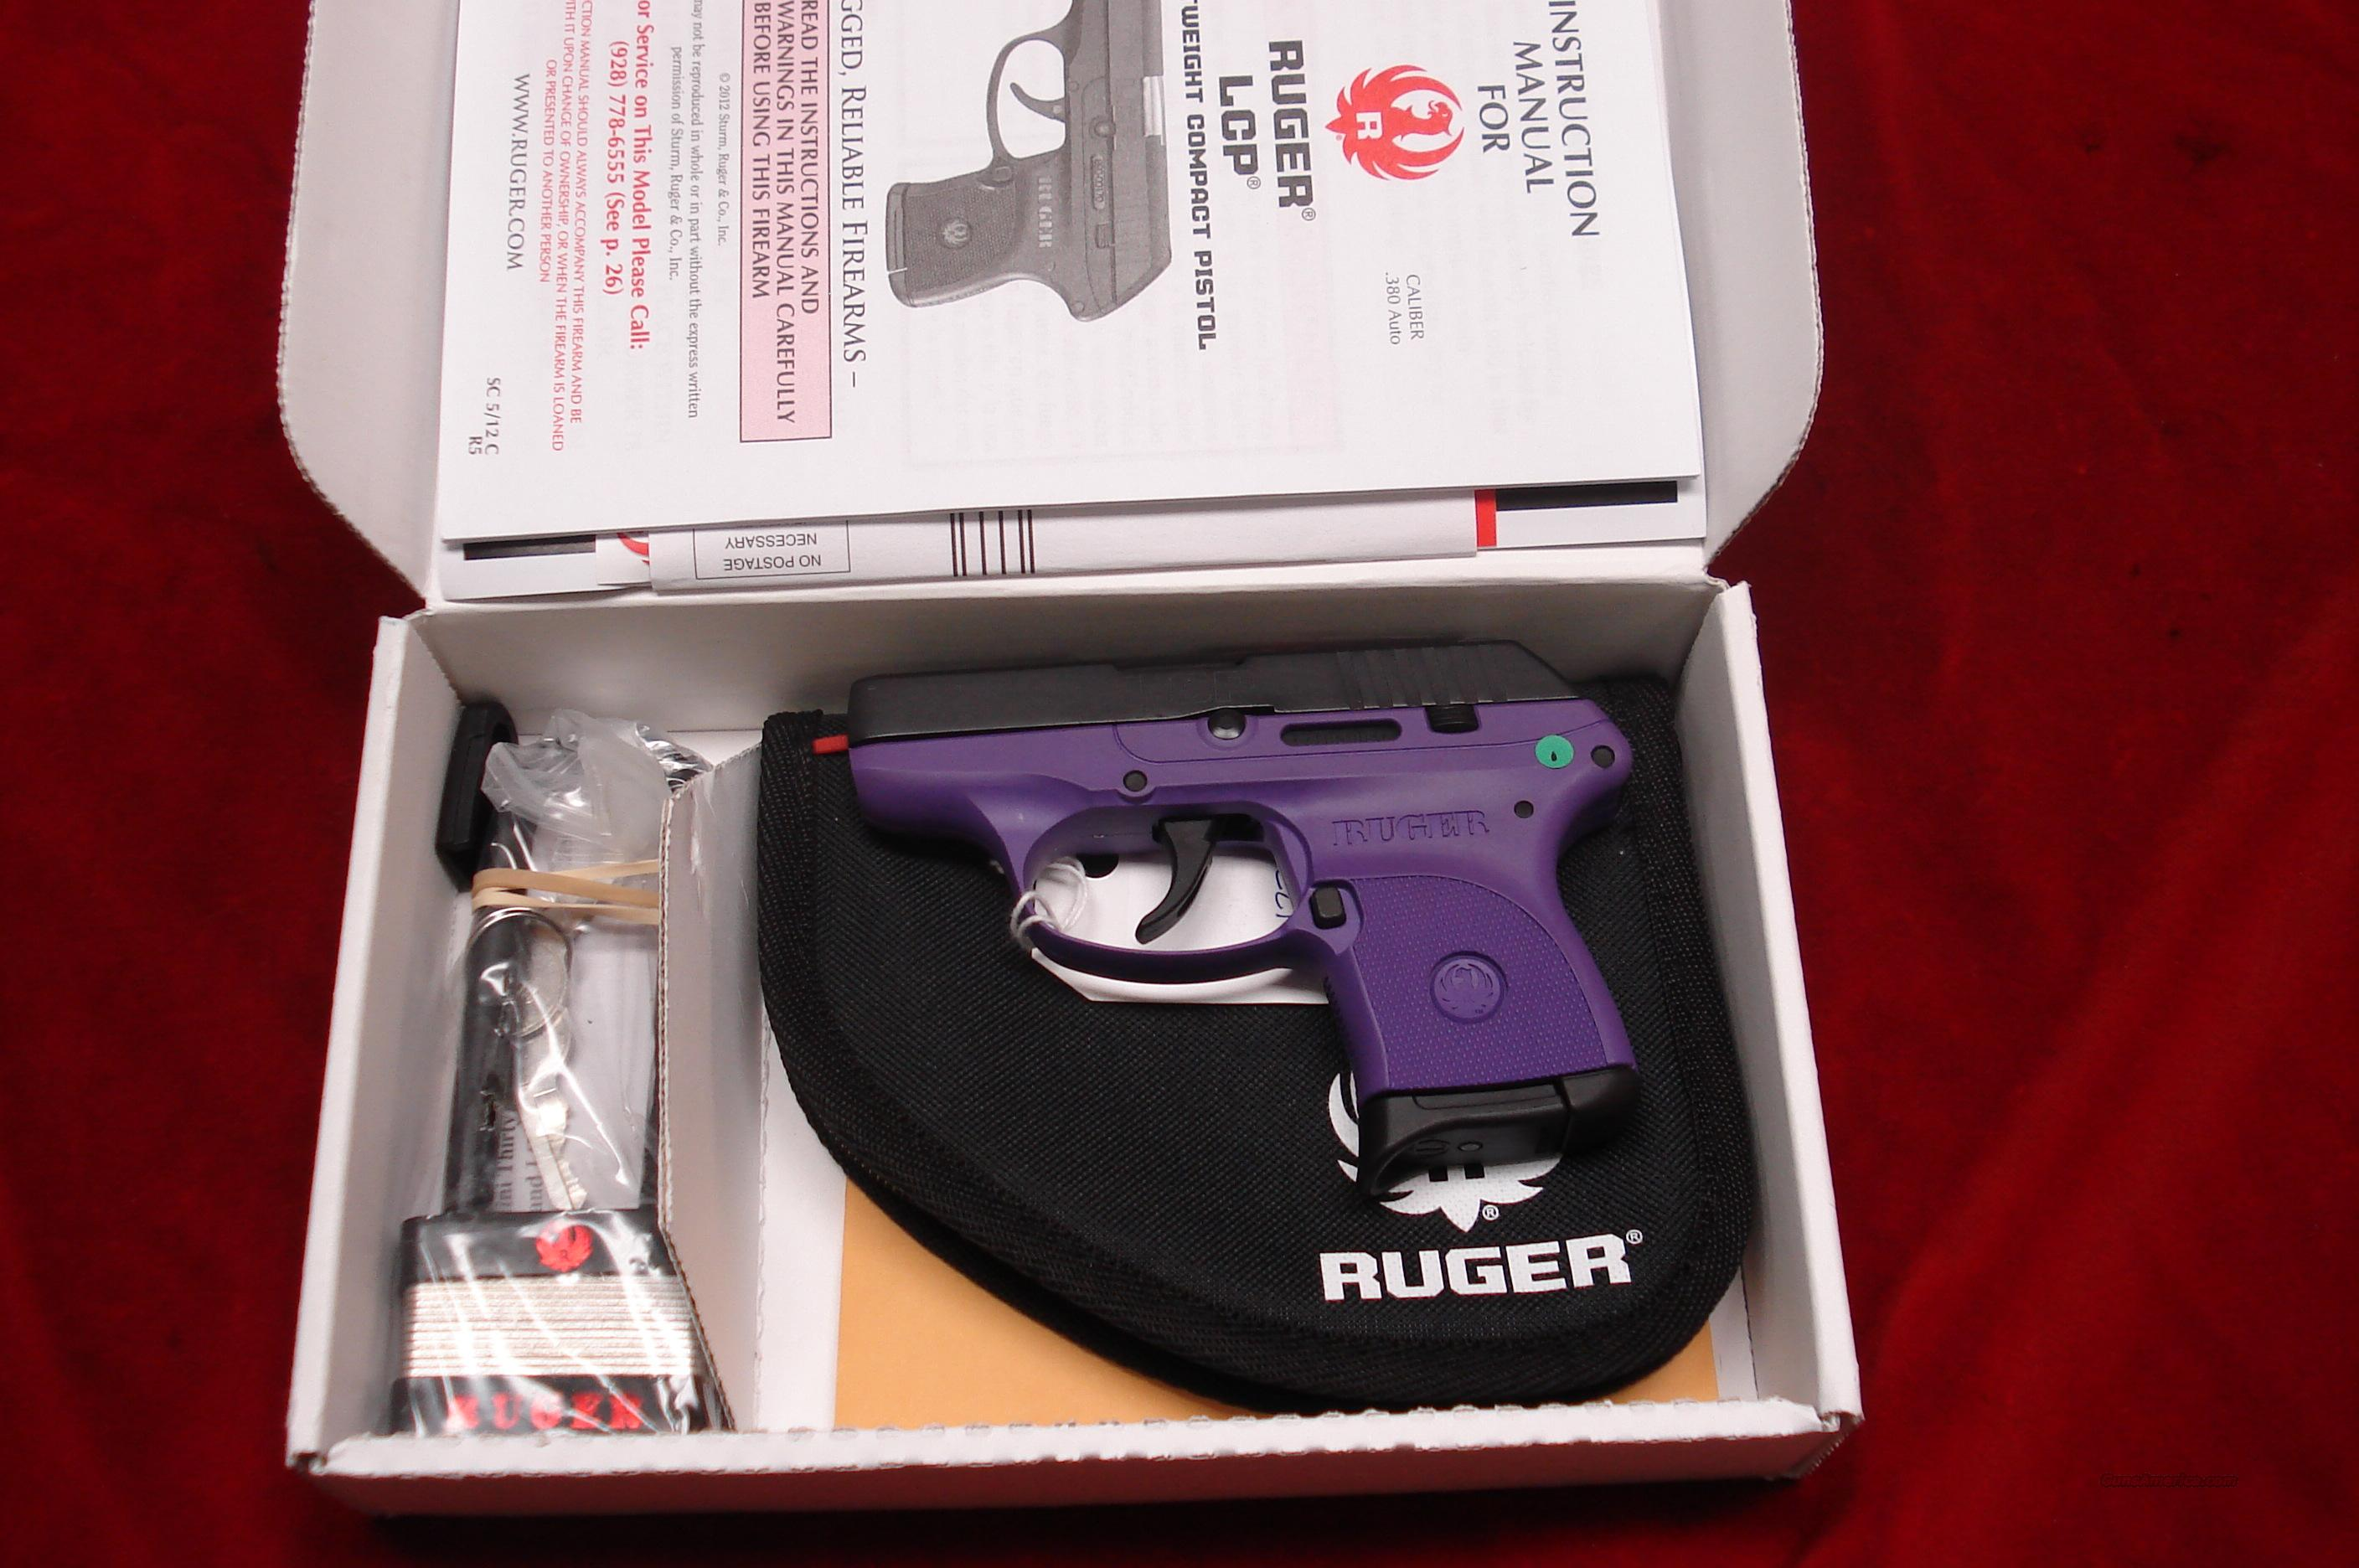 RUGER LCP-PG PURPLE GRIP (Lightweight Compact Pistol) 380CAL. NEW  Guns > Pistols > Ruger Semi-Auto Pistols > LCP